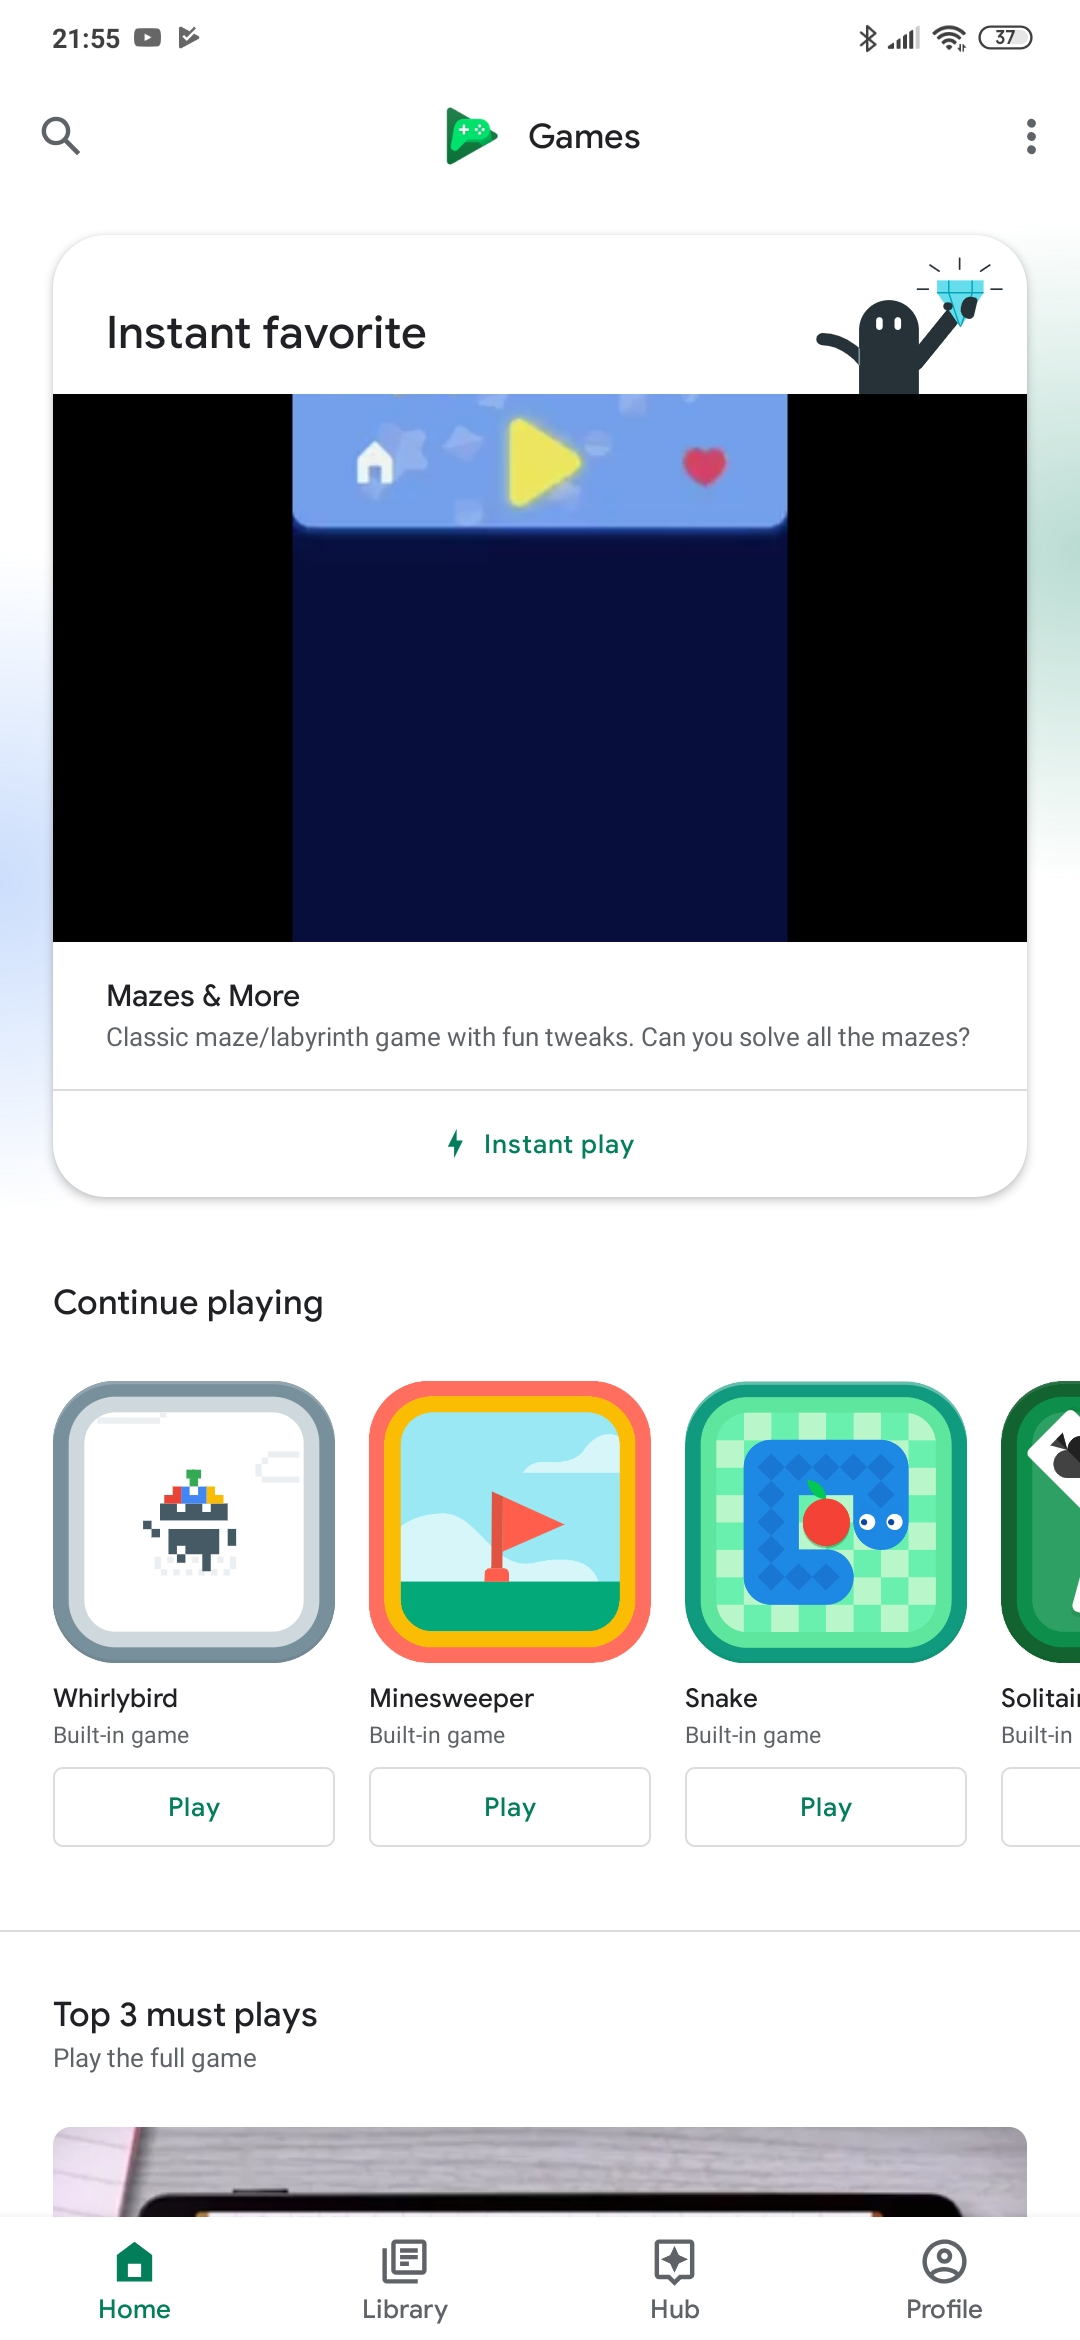 Google readies Play Games revamp w/ new 'Home' feed - 9to5Google